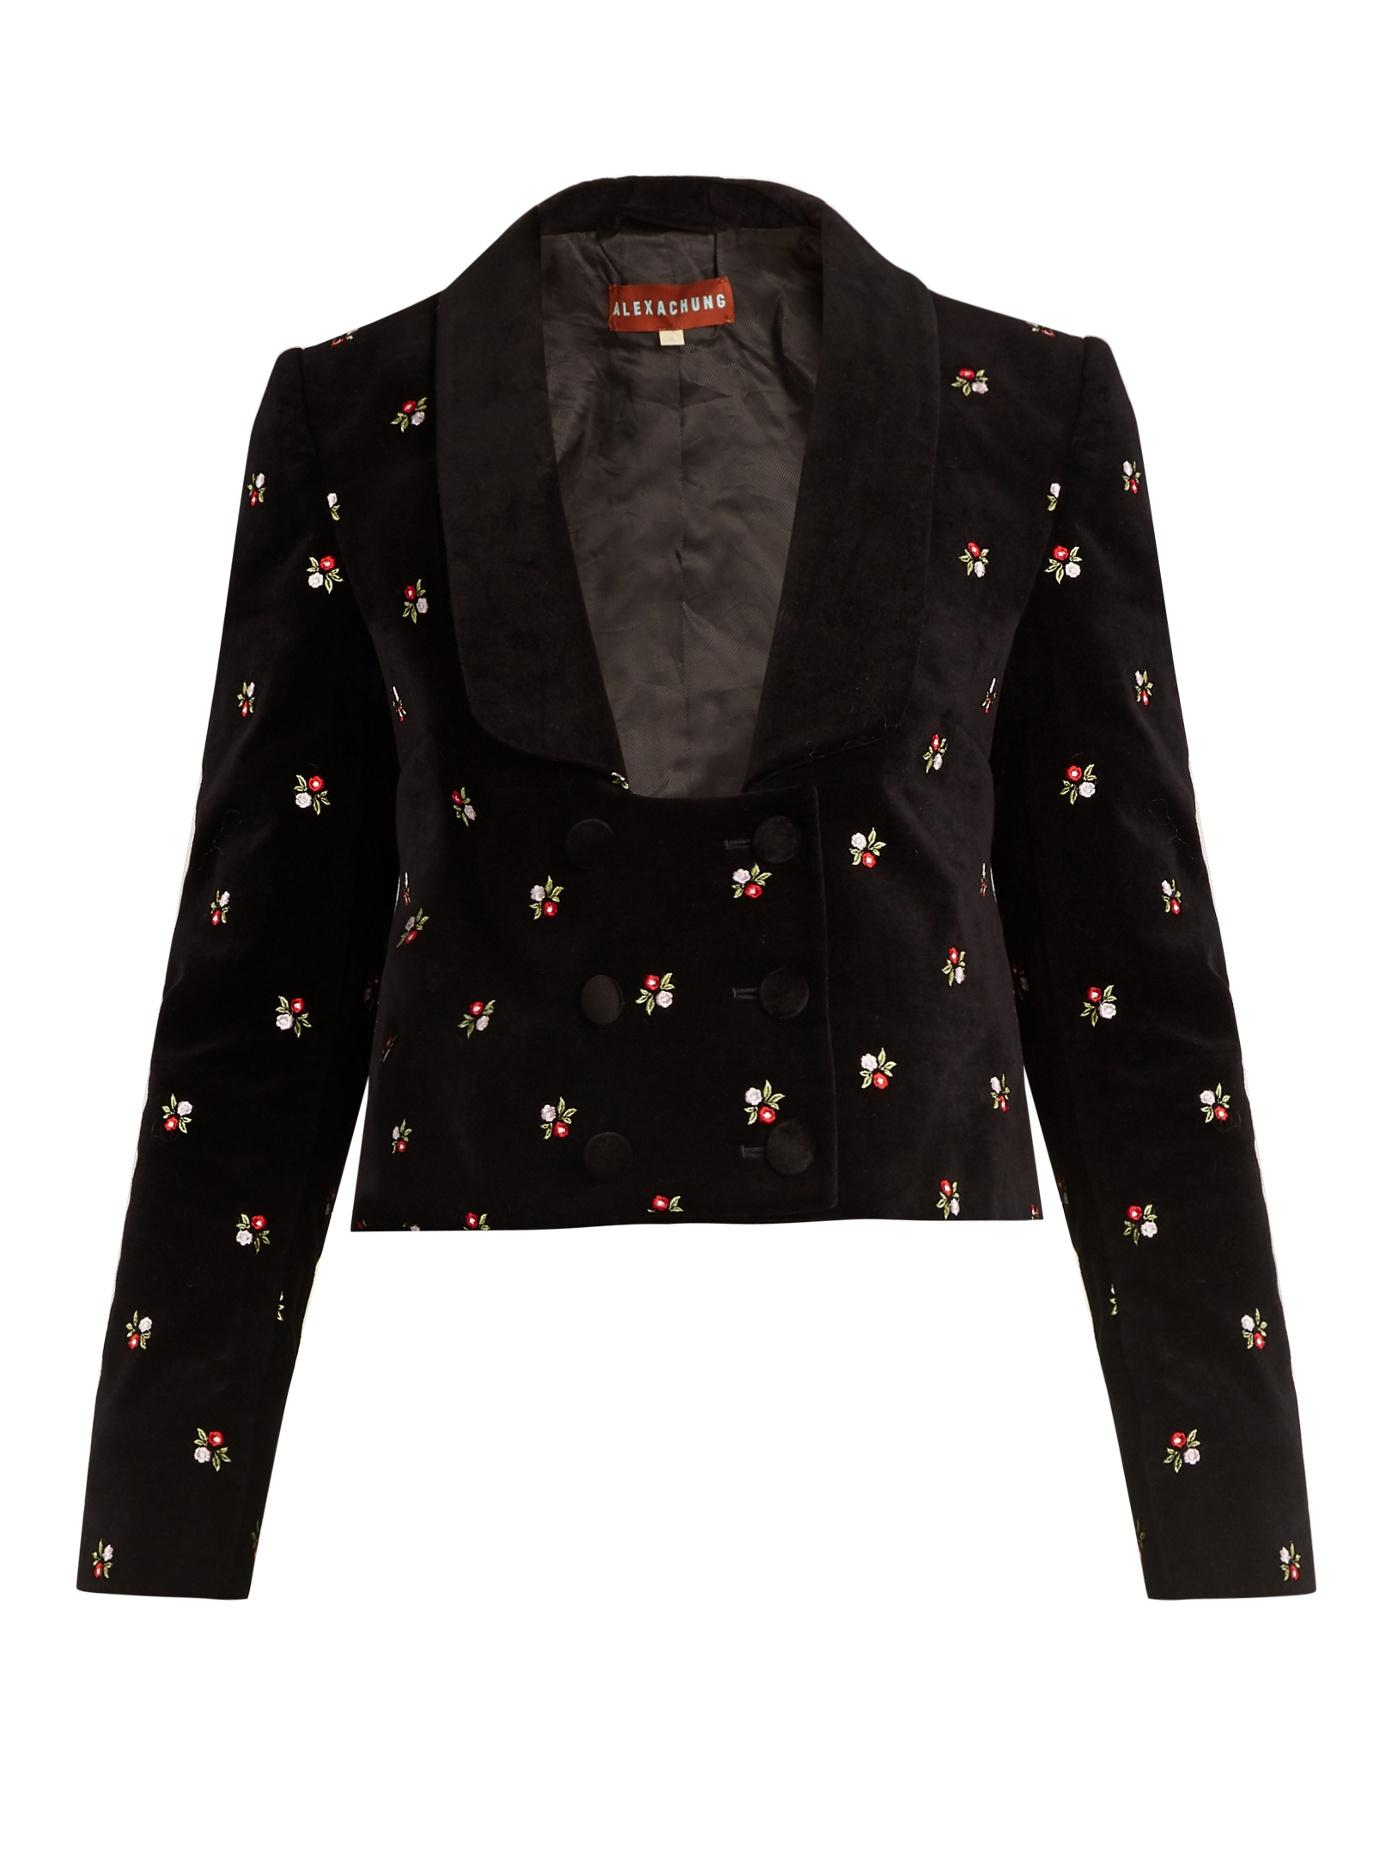 055ed9317 Alexa Chung Floral-Embroidered Cropped Cotton-Velvet Jacket In Black ...